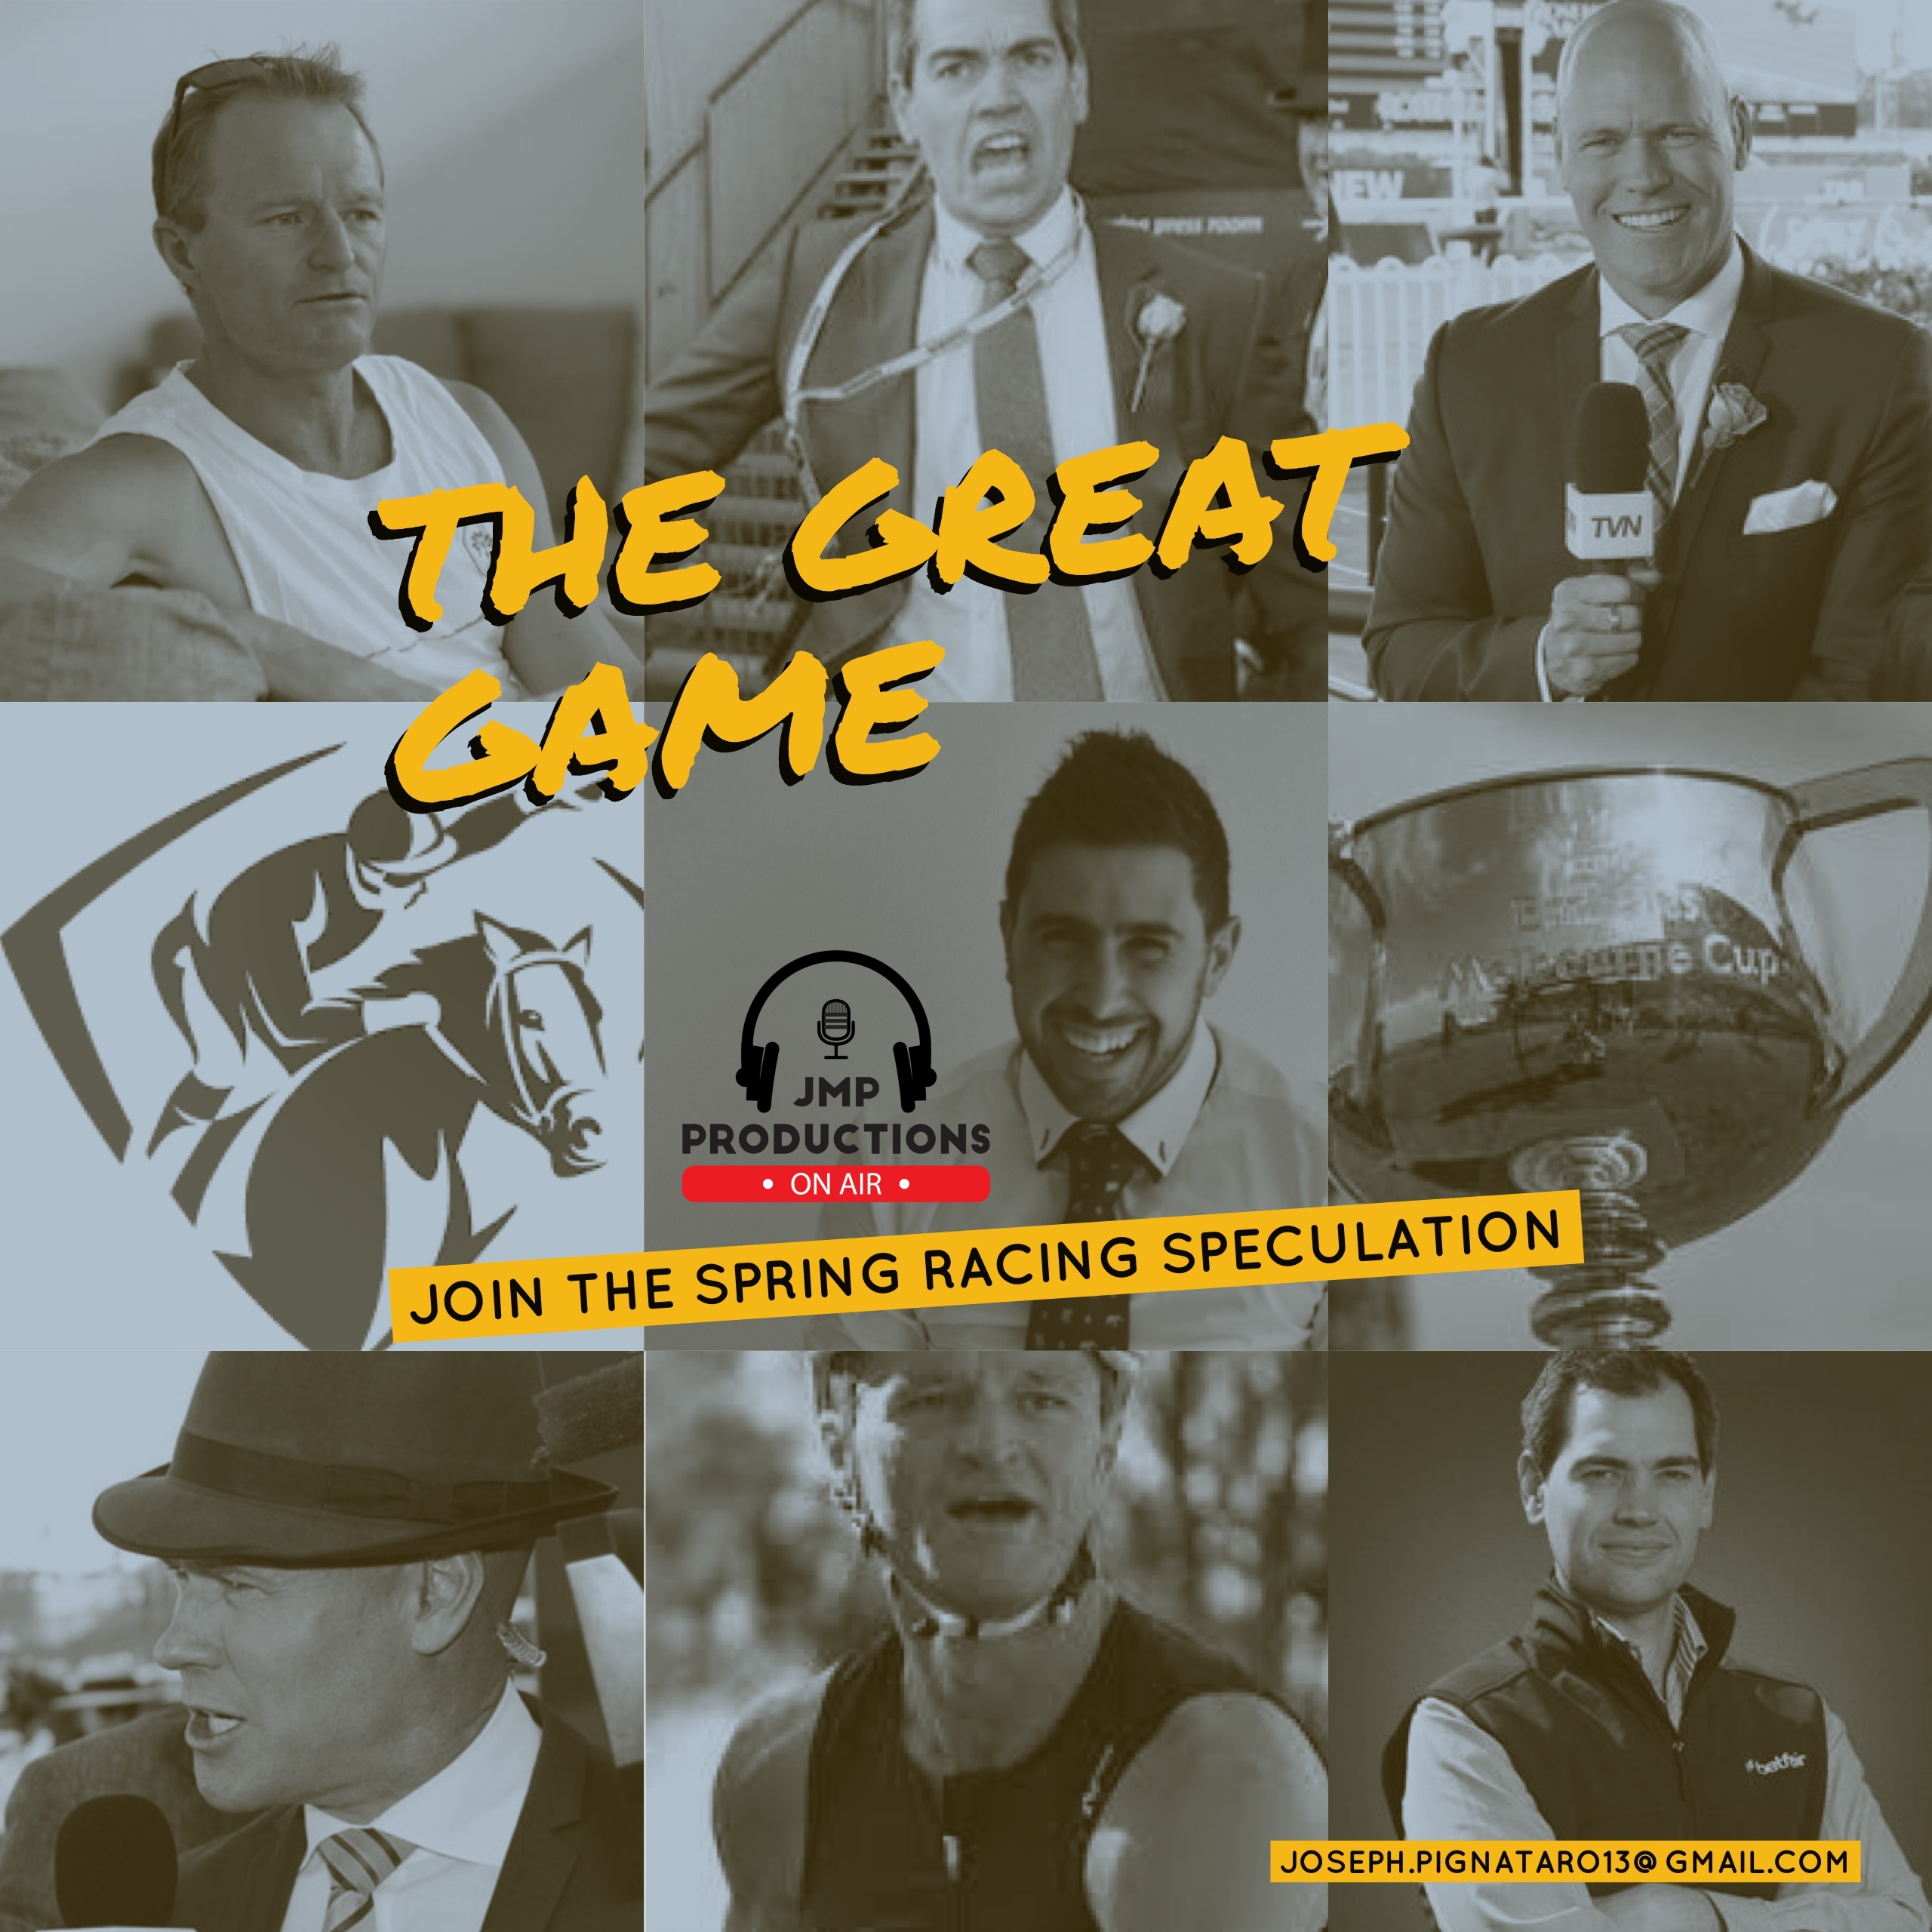 Episode 23 - The Great Game (May 30, 2019)